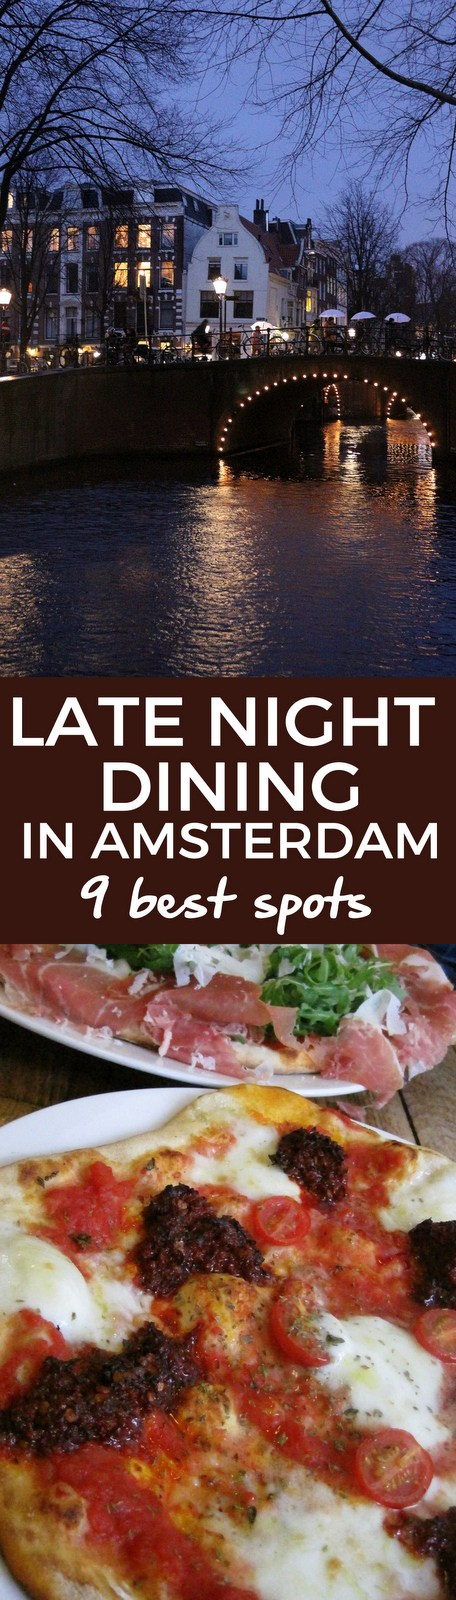 Amsterdam Late Night Dining Options It S After 10pm Where Can You Grab A Meal And Maybe Drink Here Are Our Top Tips For Restaurants Open In